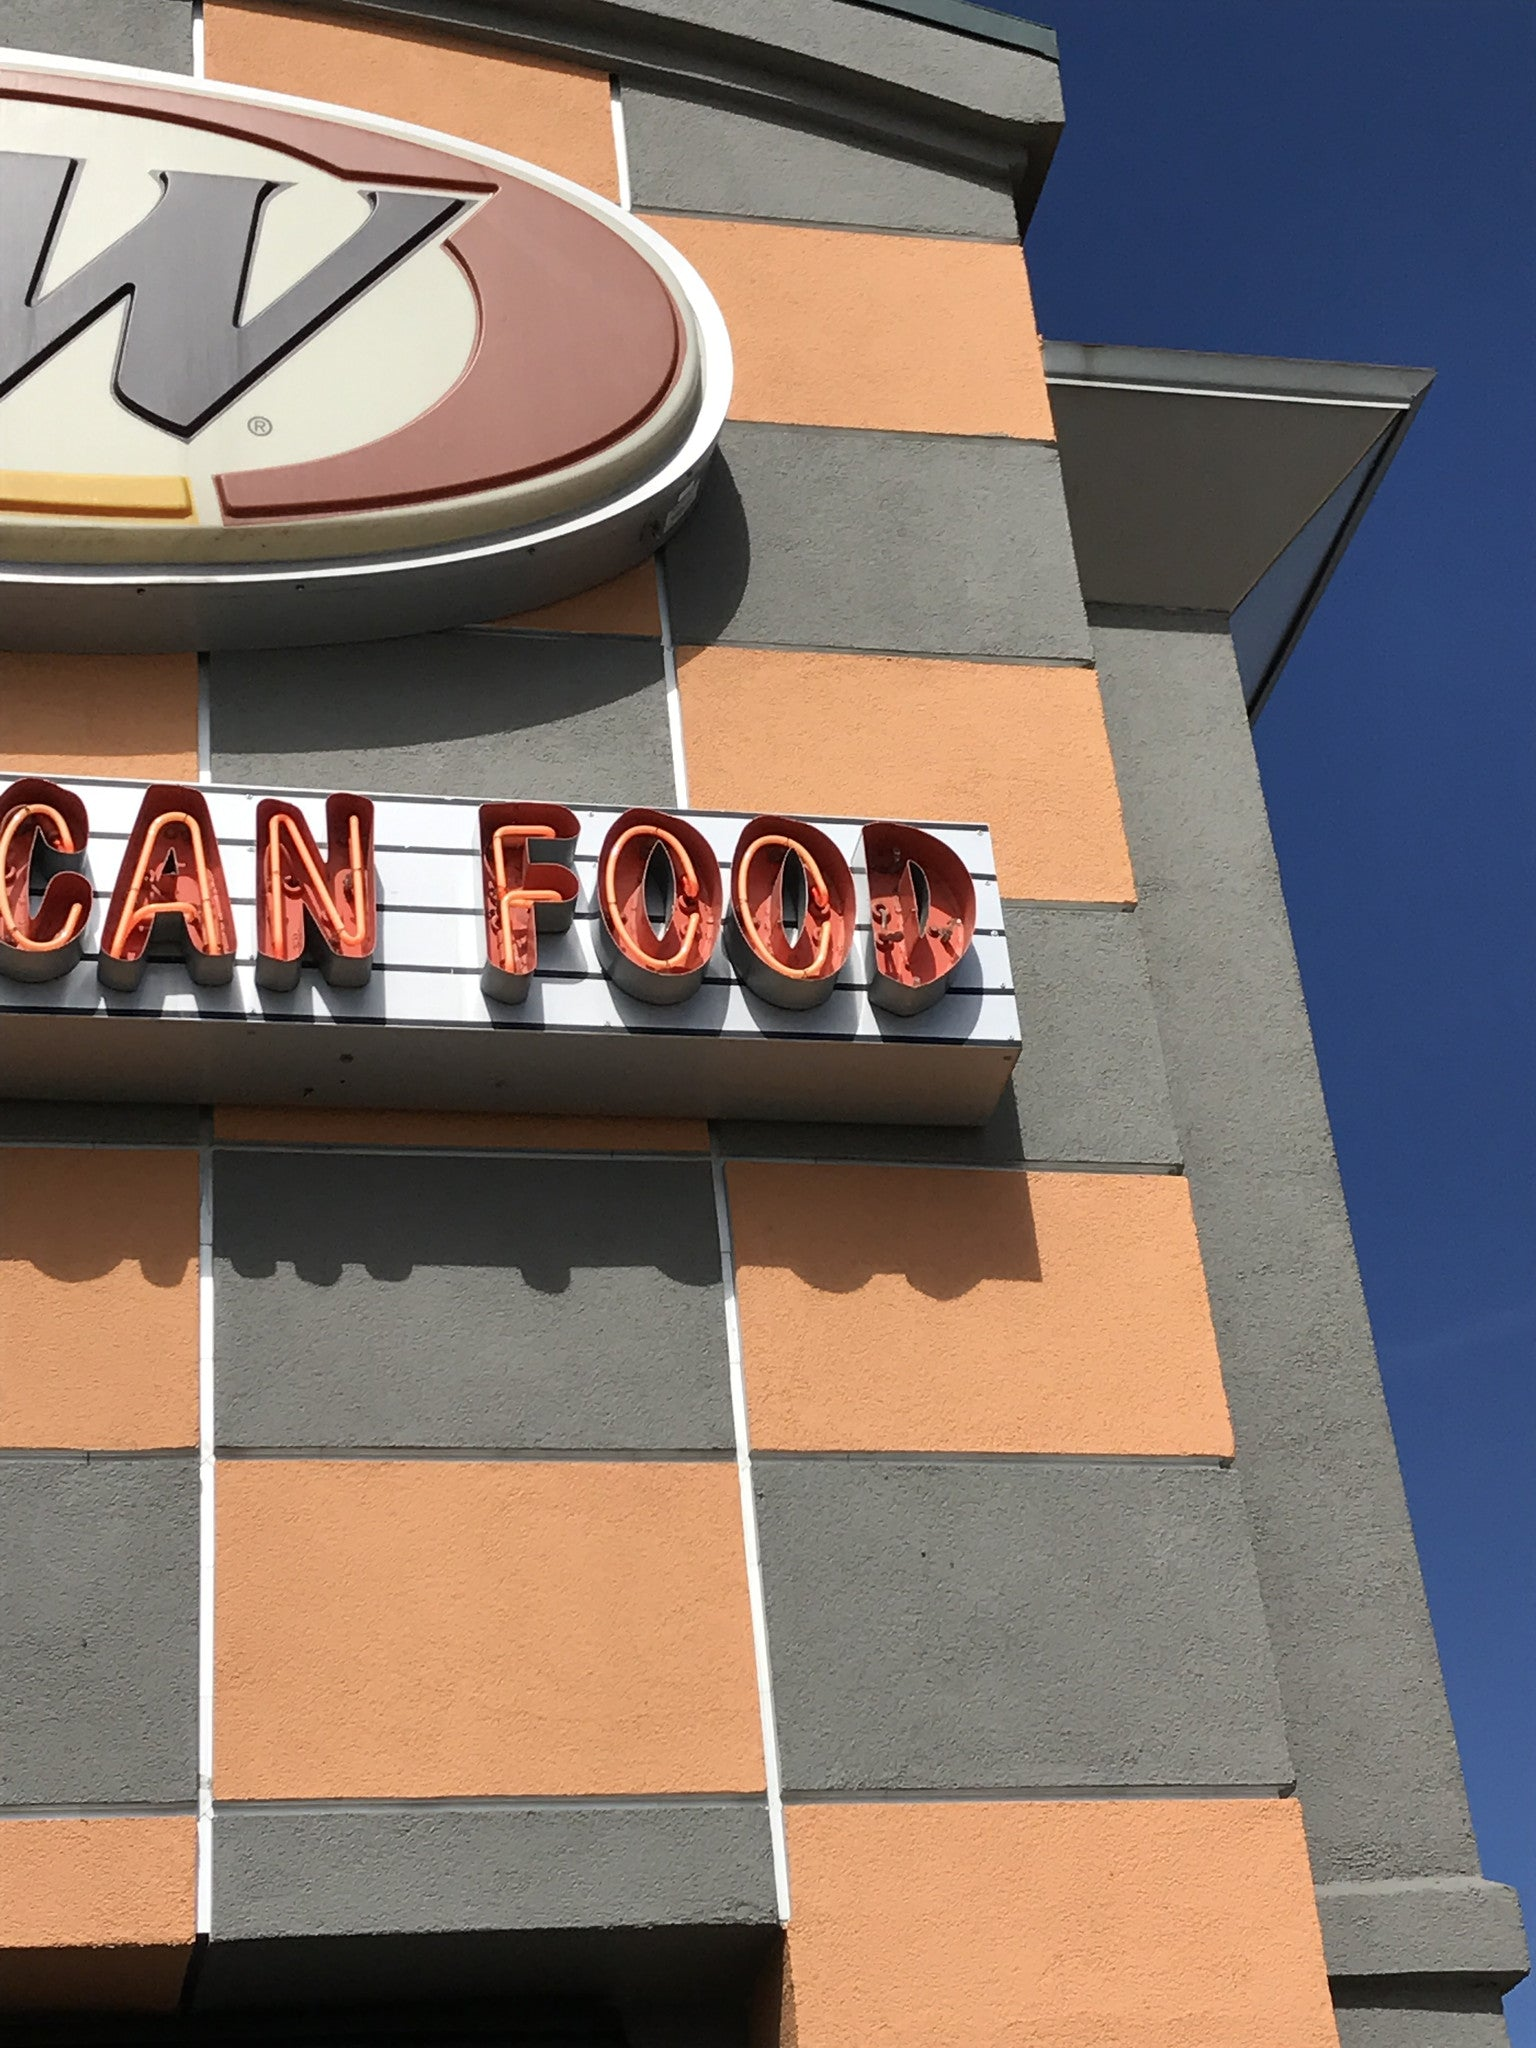 Commercial Sign Repair in Denver